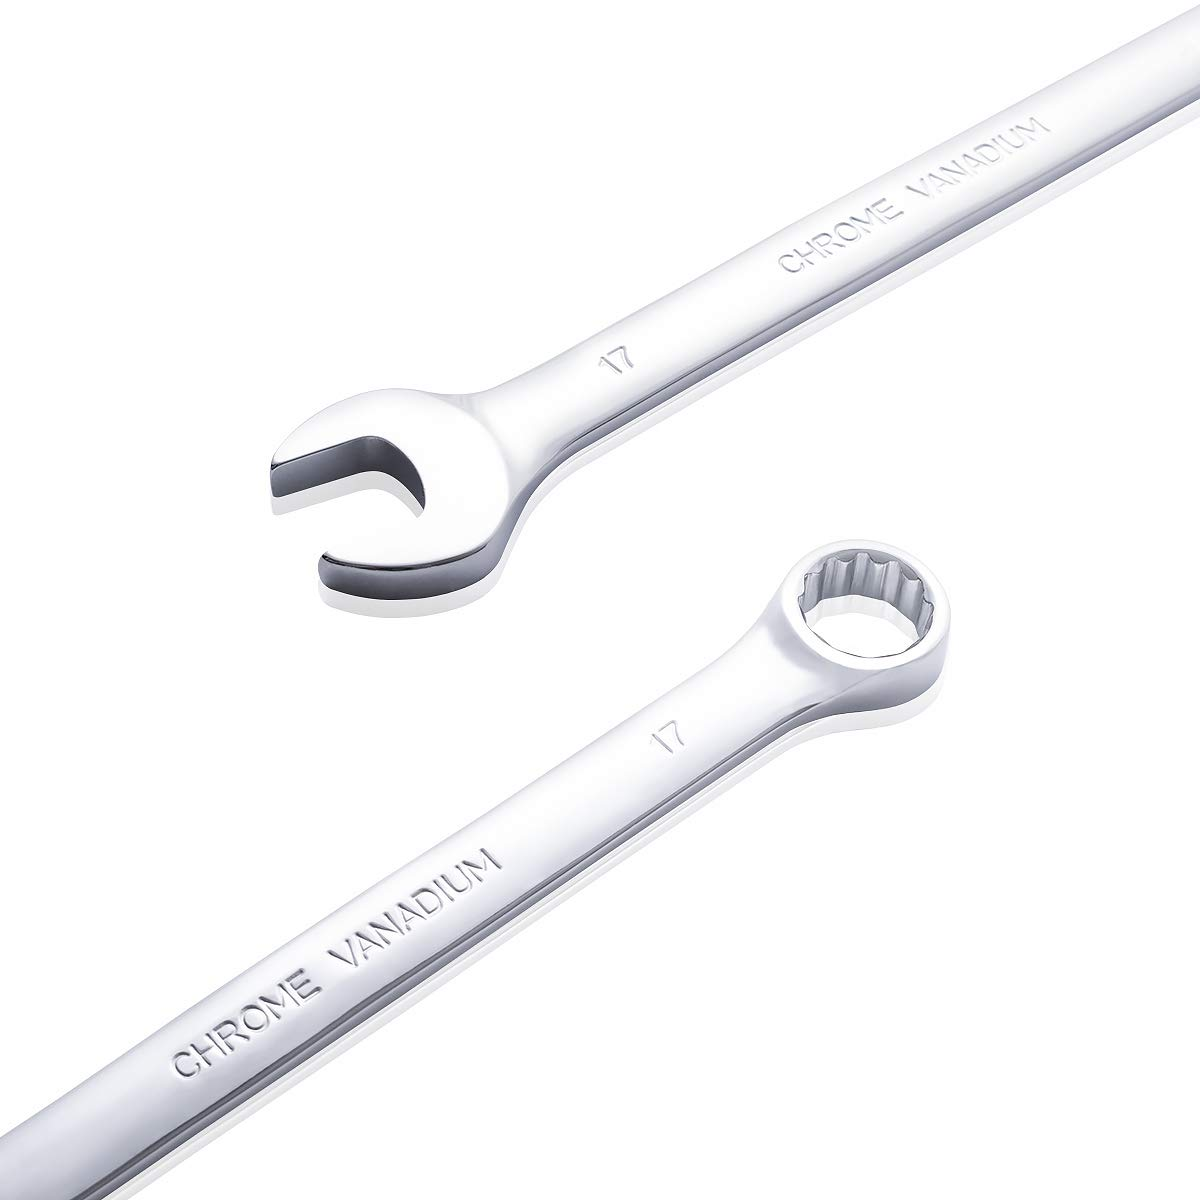 FINDER BS192183D Combination Wrench Open and Box End Metric Spanner Set of 10pcs 8mm-24mm